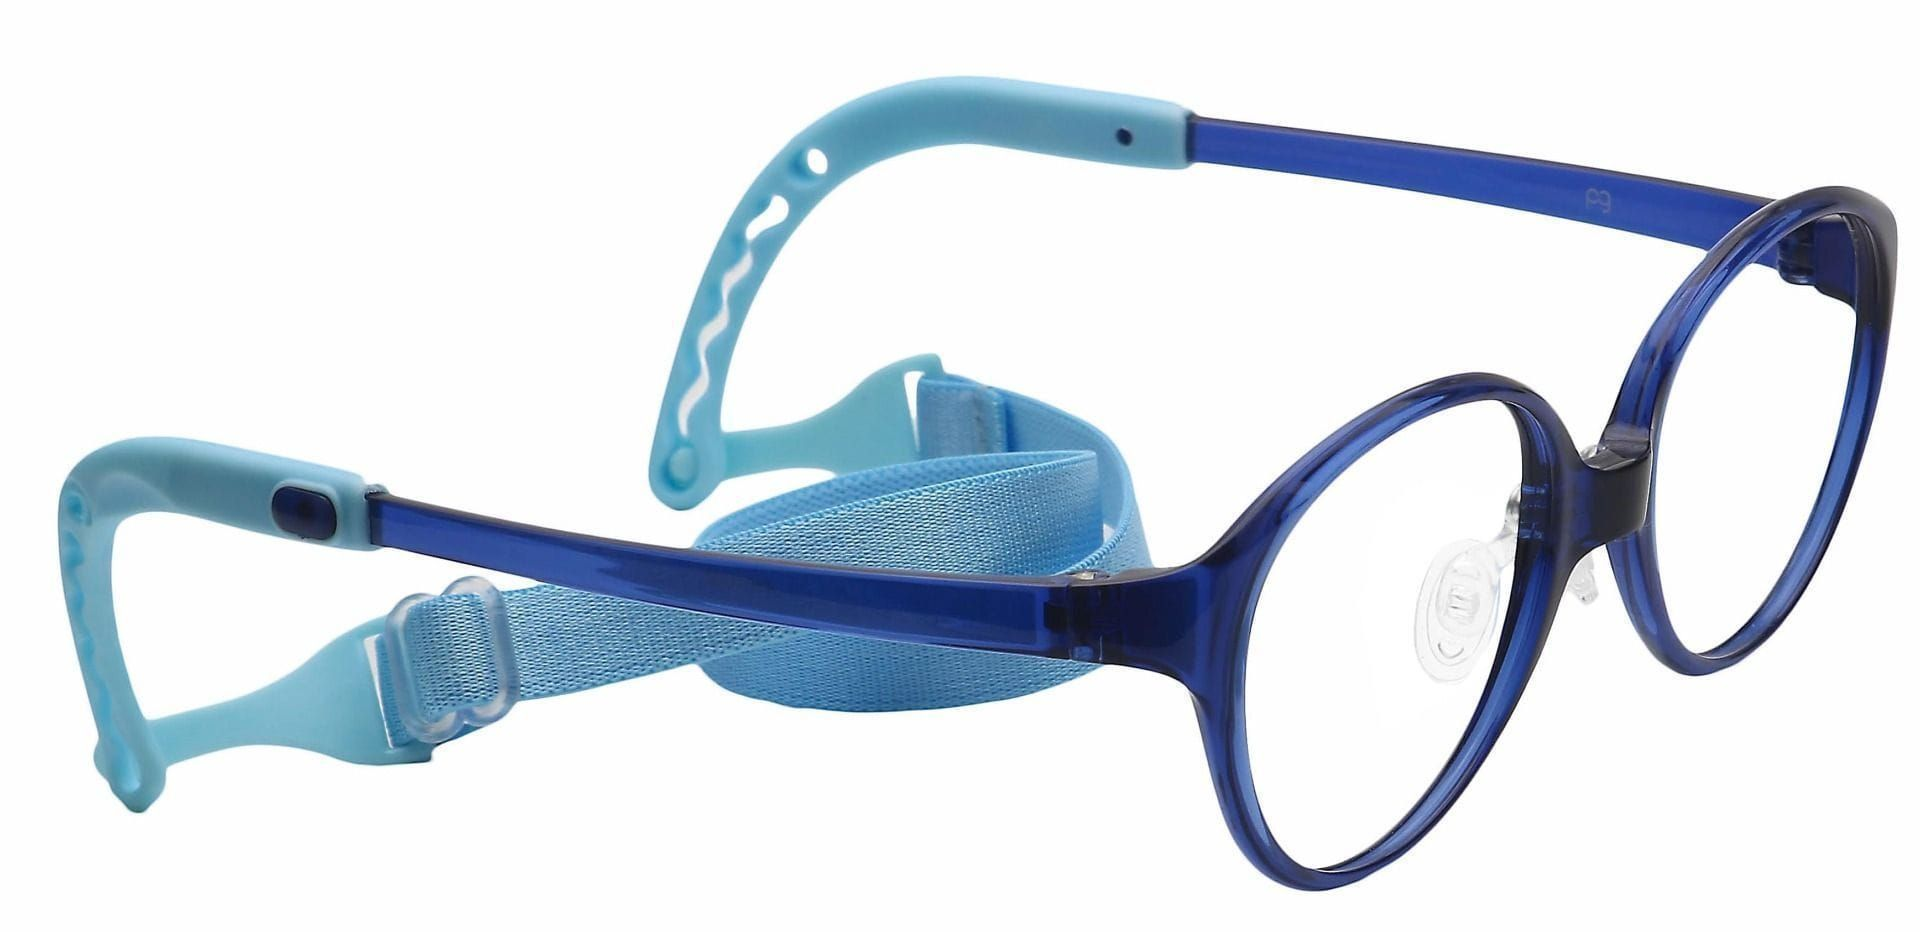 Zany Oval Non-Rx Glasses - Navy/turquoise